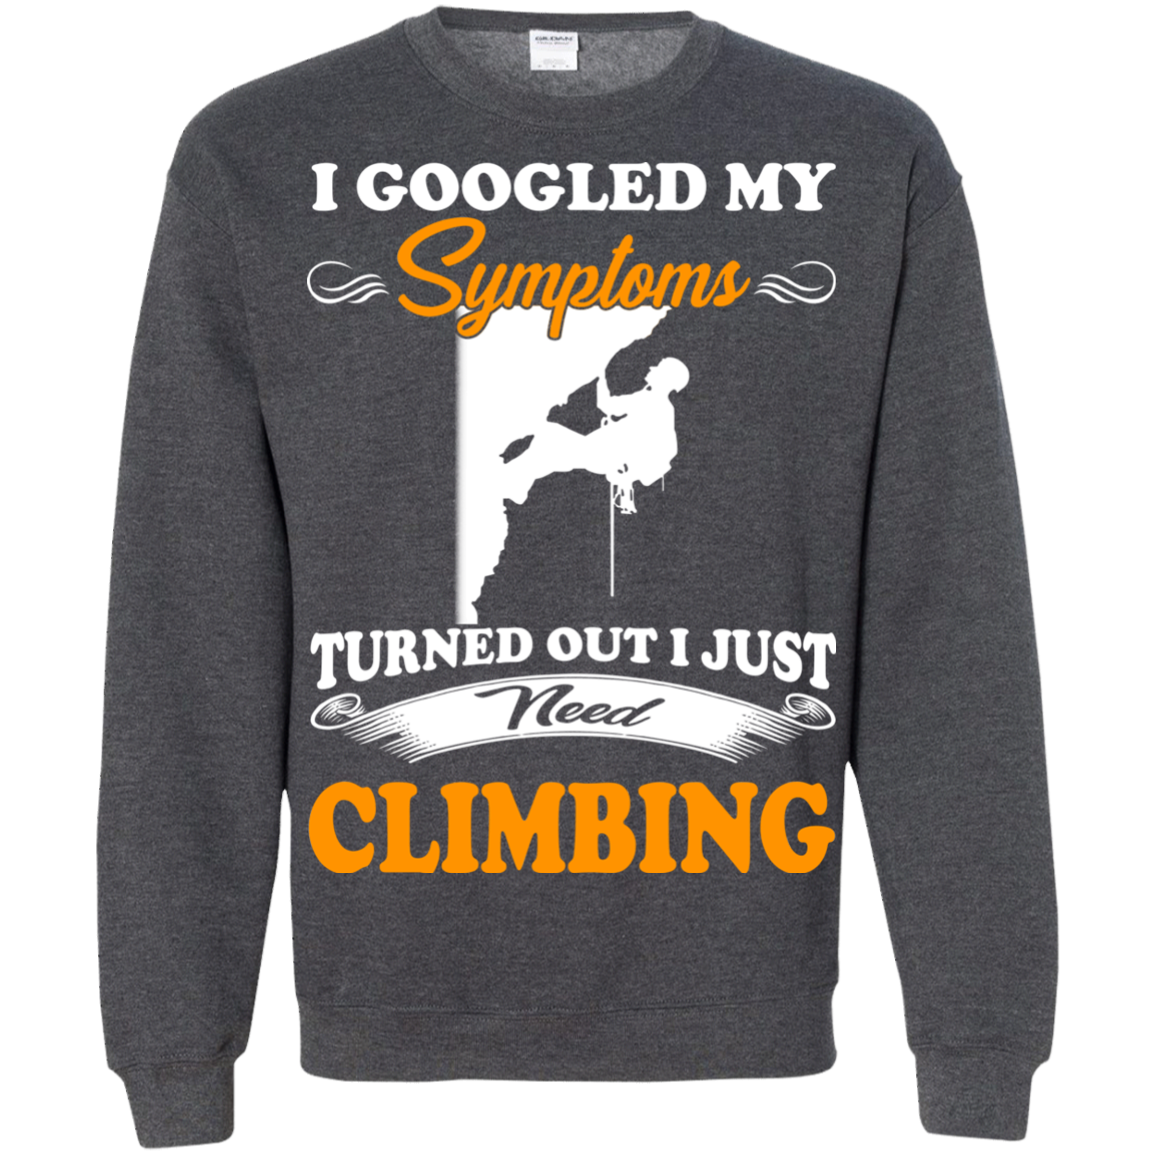 Climbing T shirts Googled My Symptoms Just Need Hoodies Sweatshirts TH